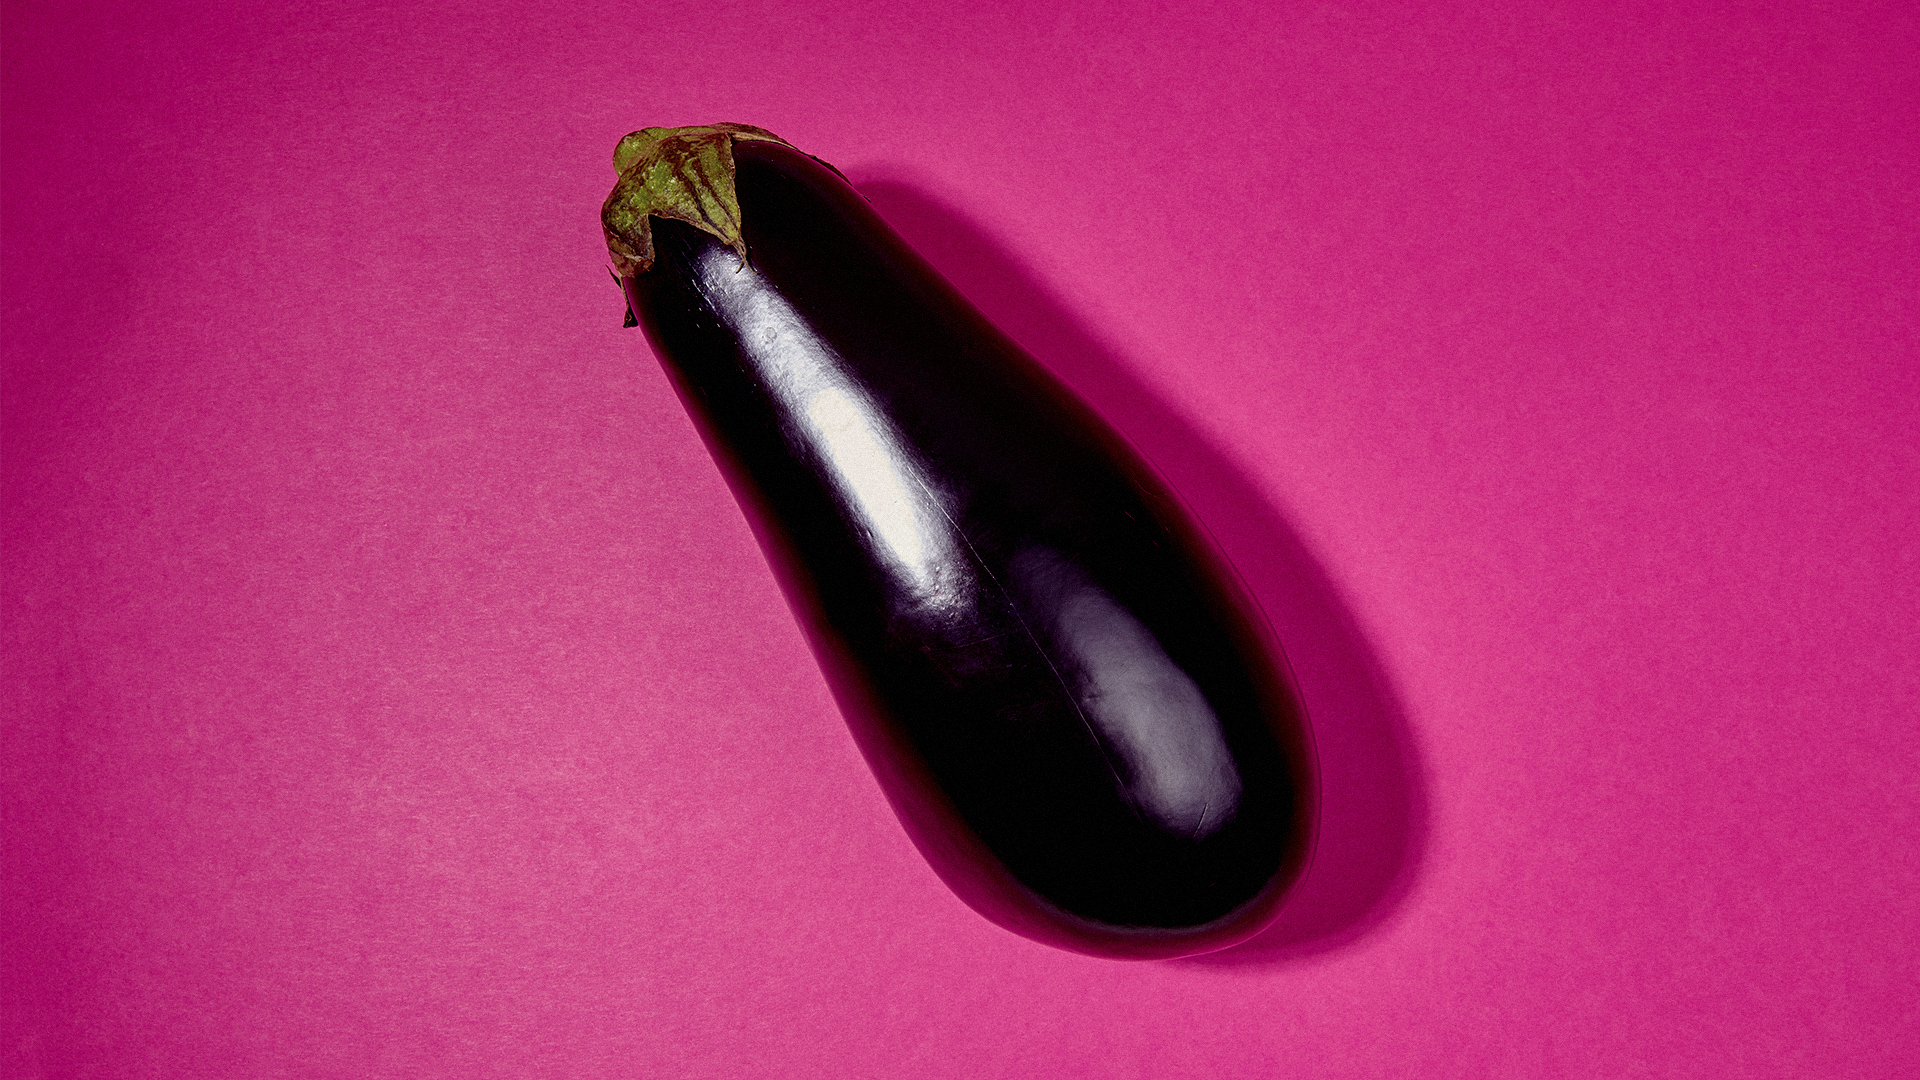 This $13,000 Penis Implant Makes Your Junk Bigger in an Hour